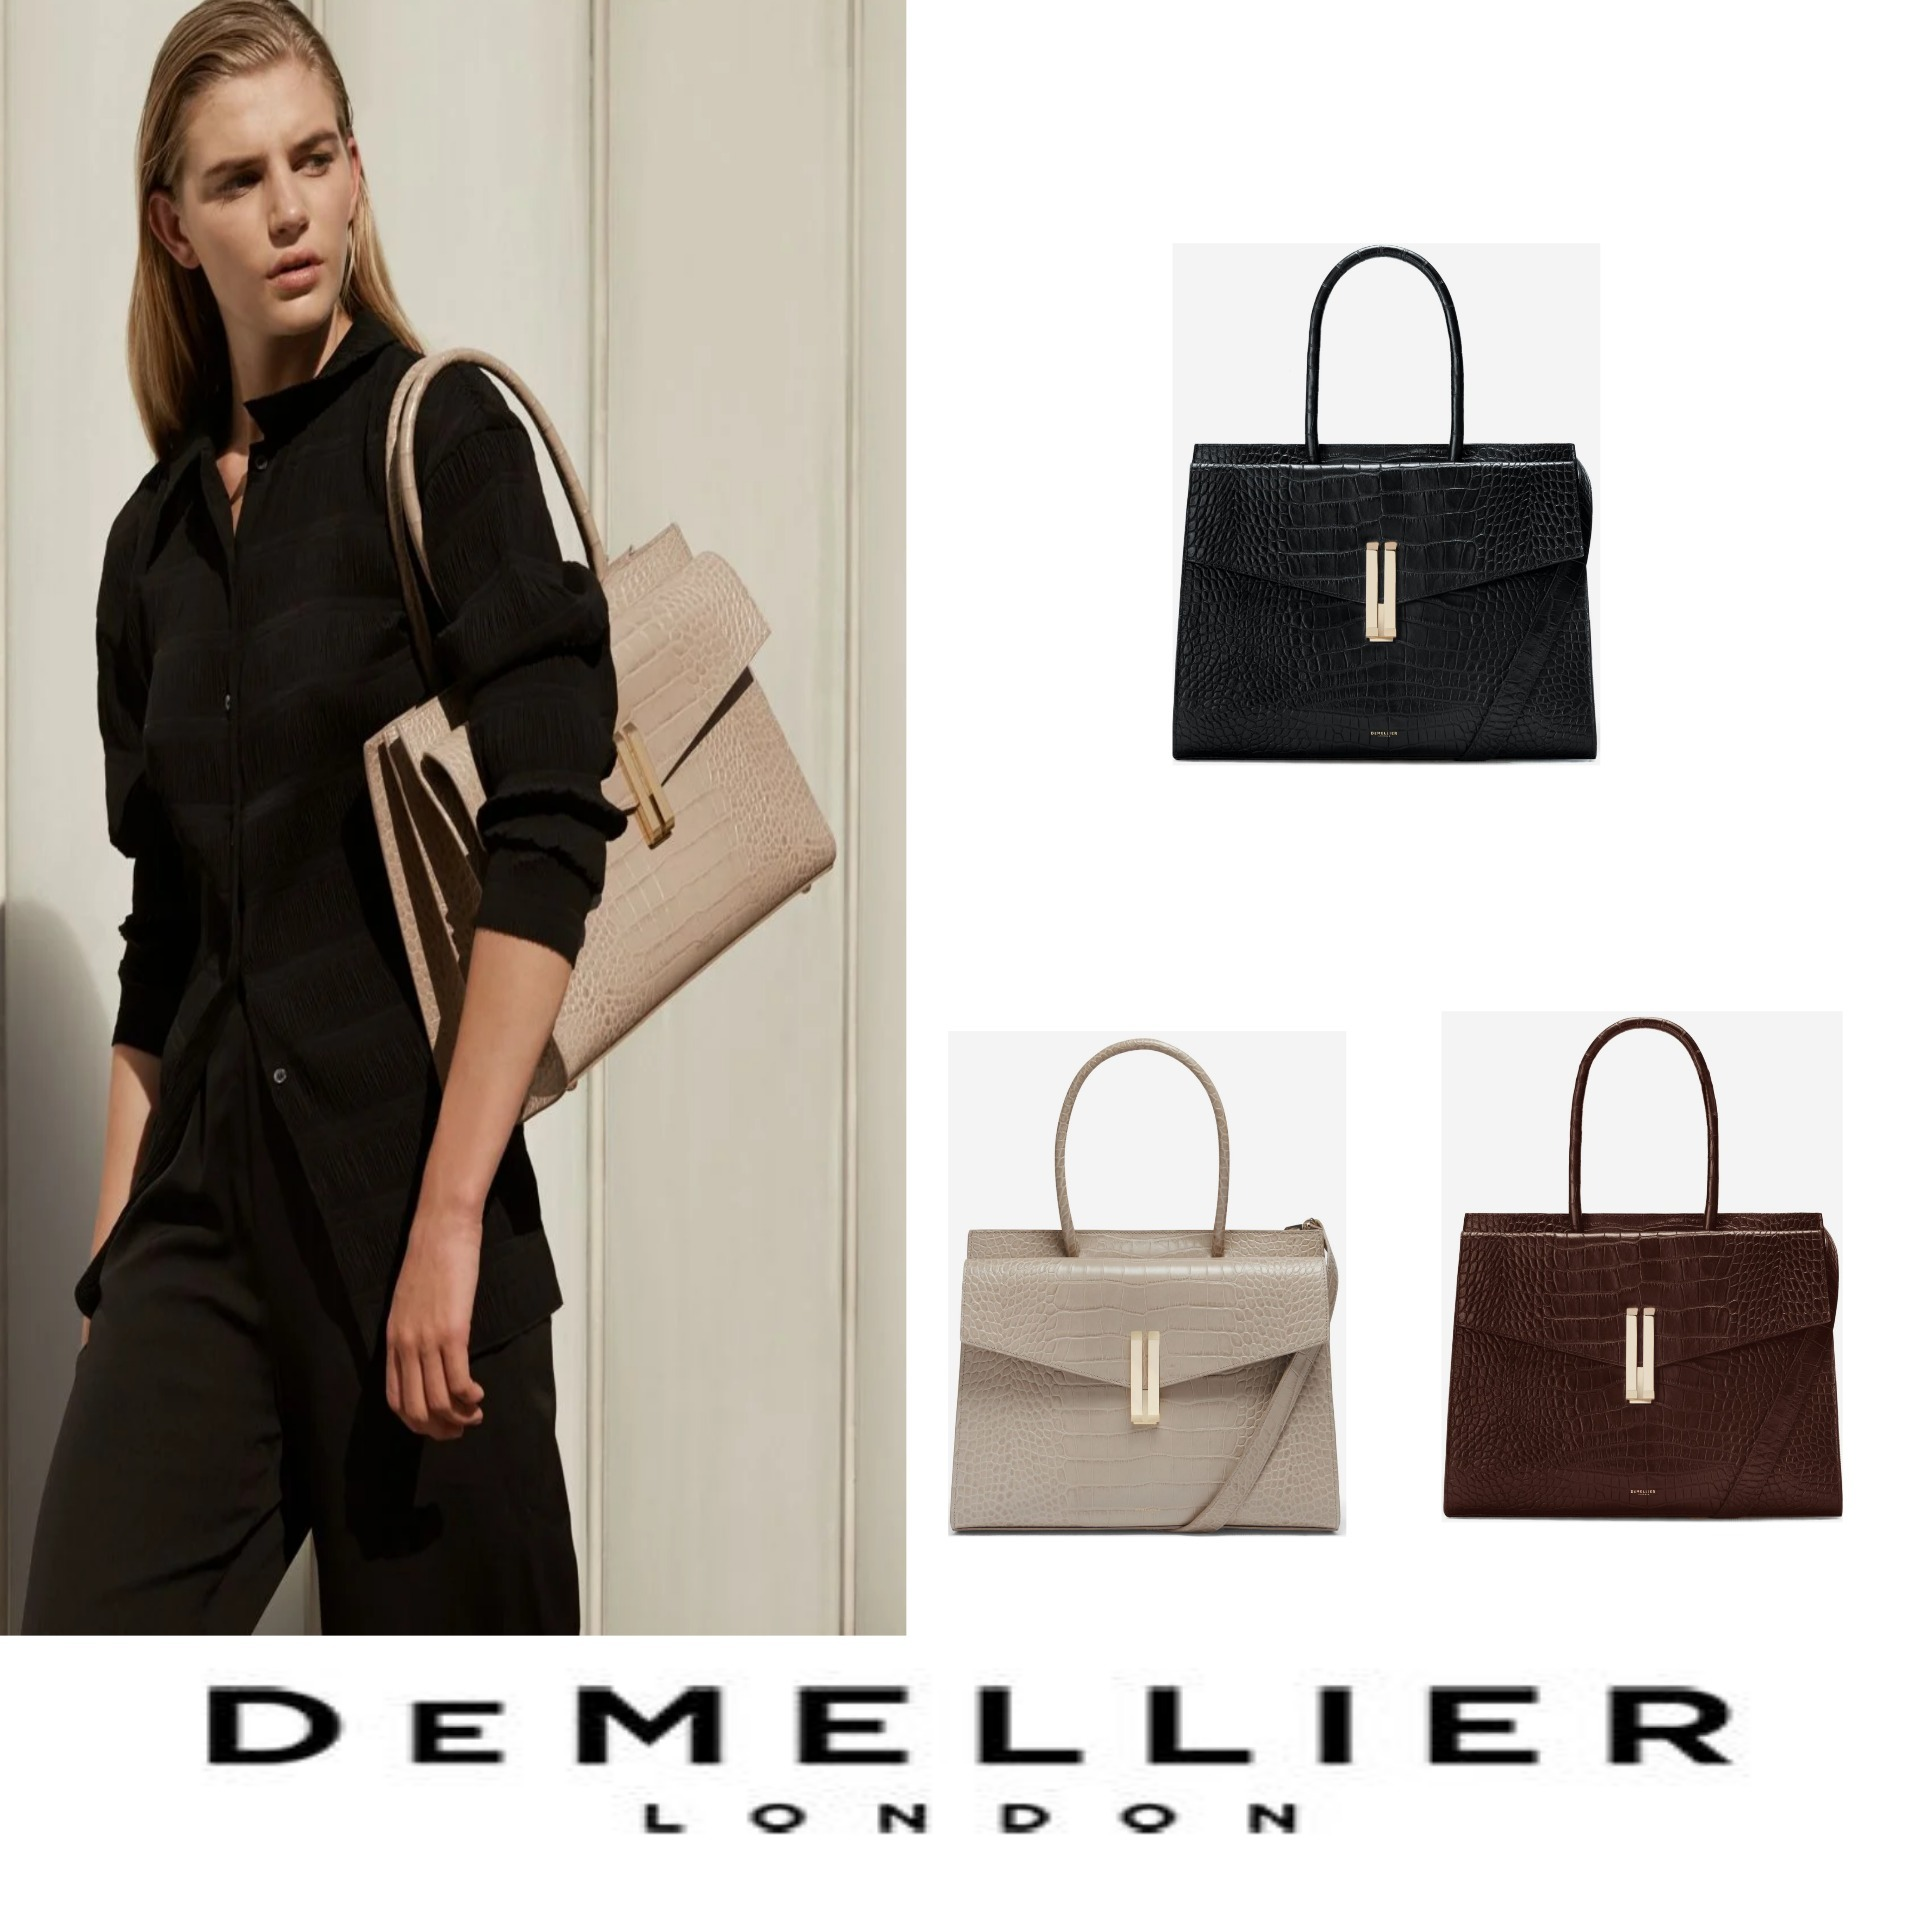 DEMELLIER メーガン妃ご愛用ブランド バッグ 日本未出店 (DEMELLIER/クラッチバッグ) THE MAXI MONTREAL LONG HANDLES